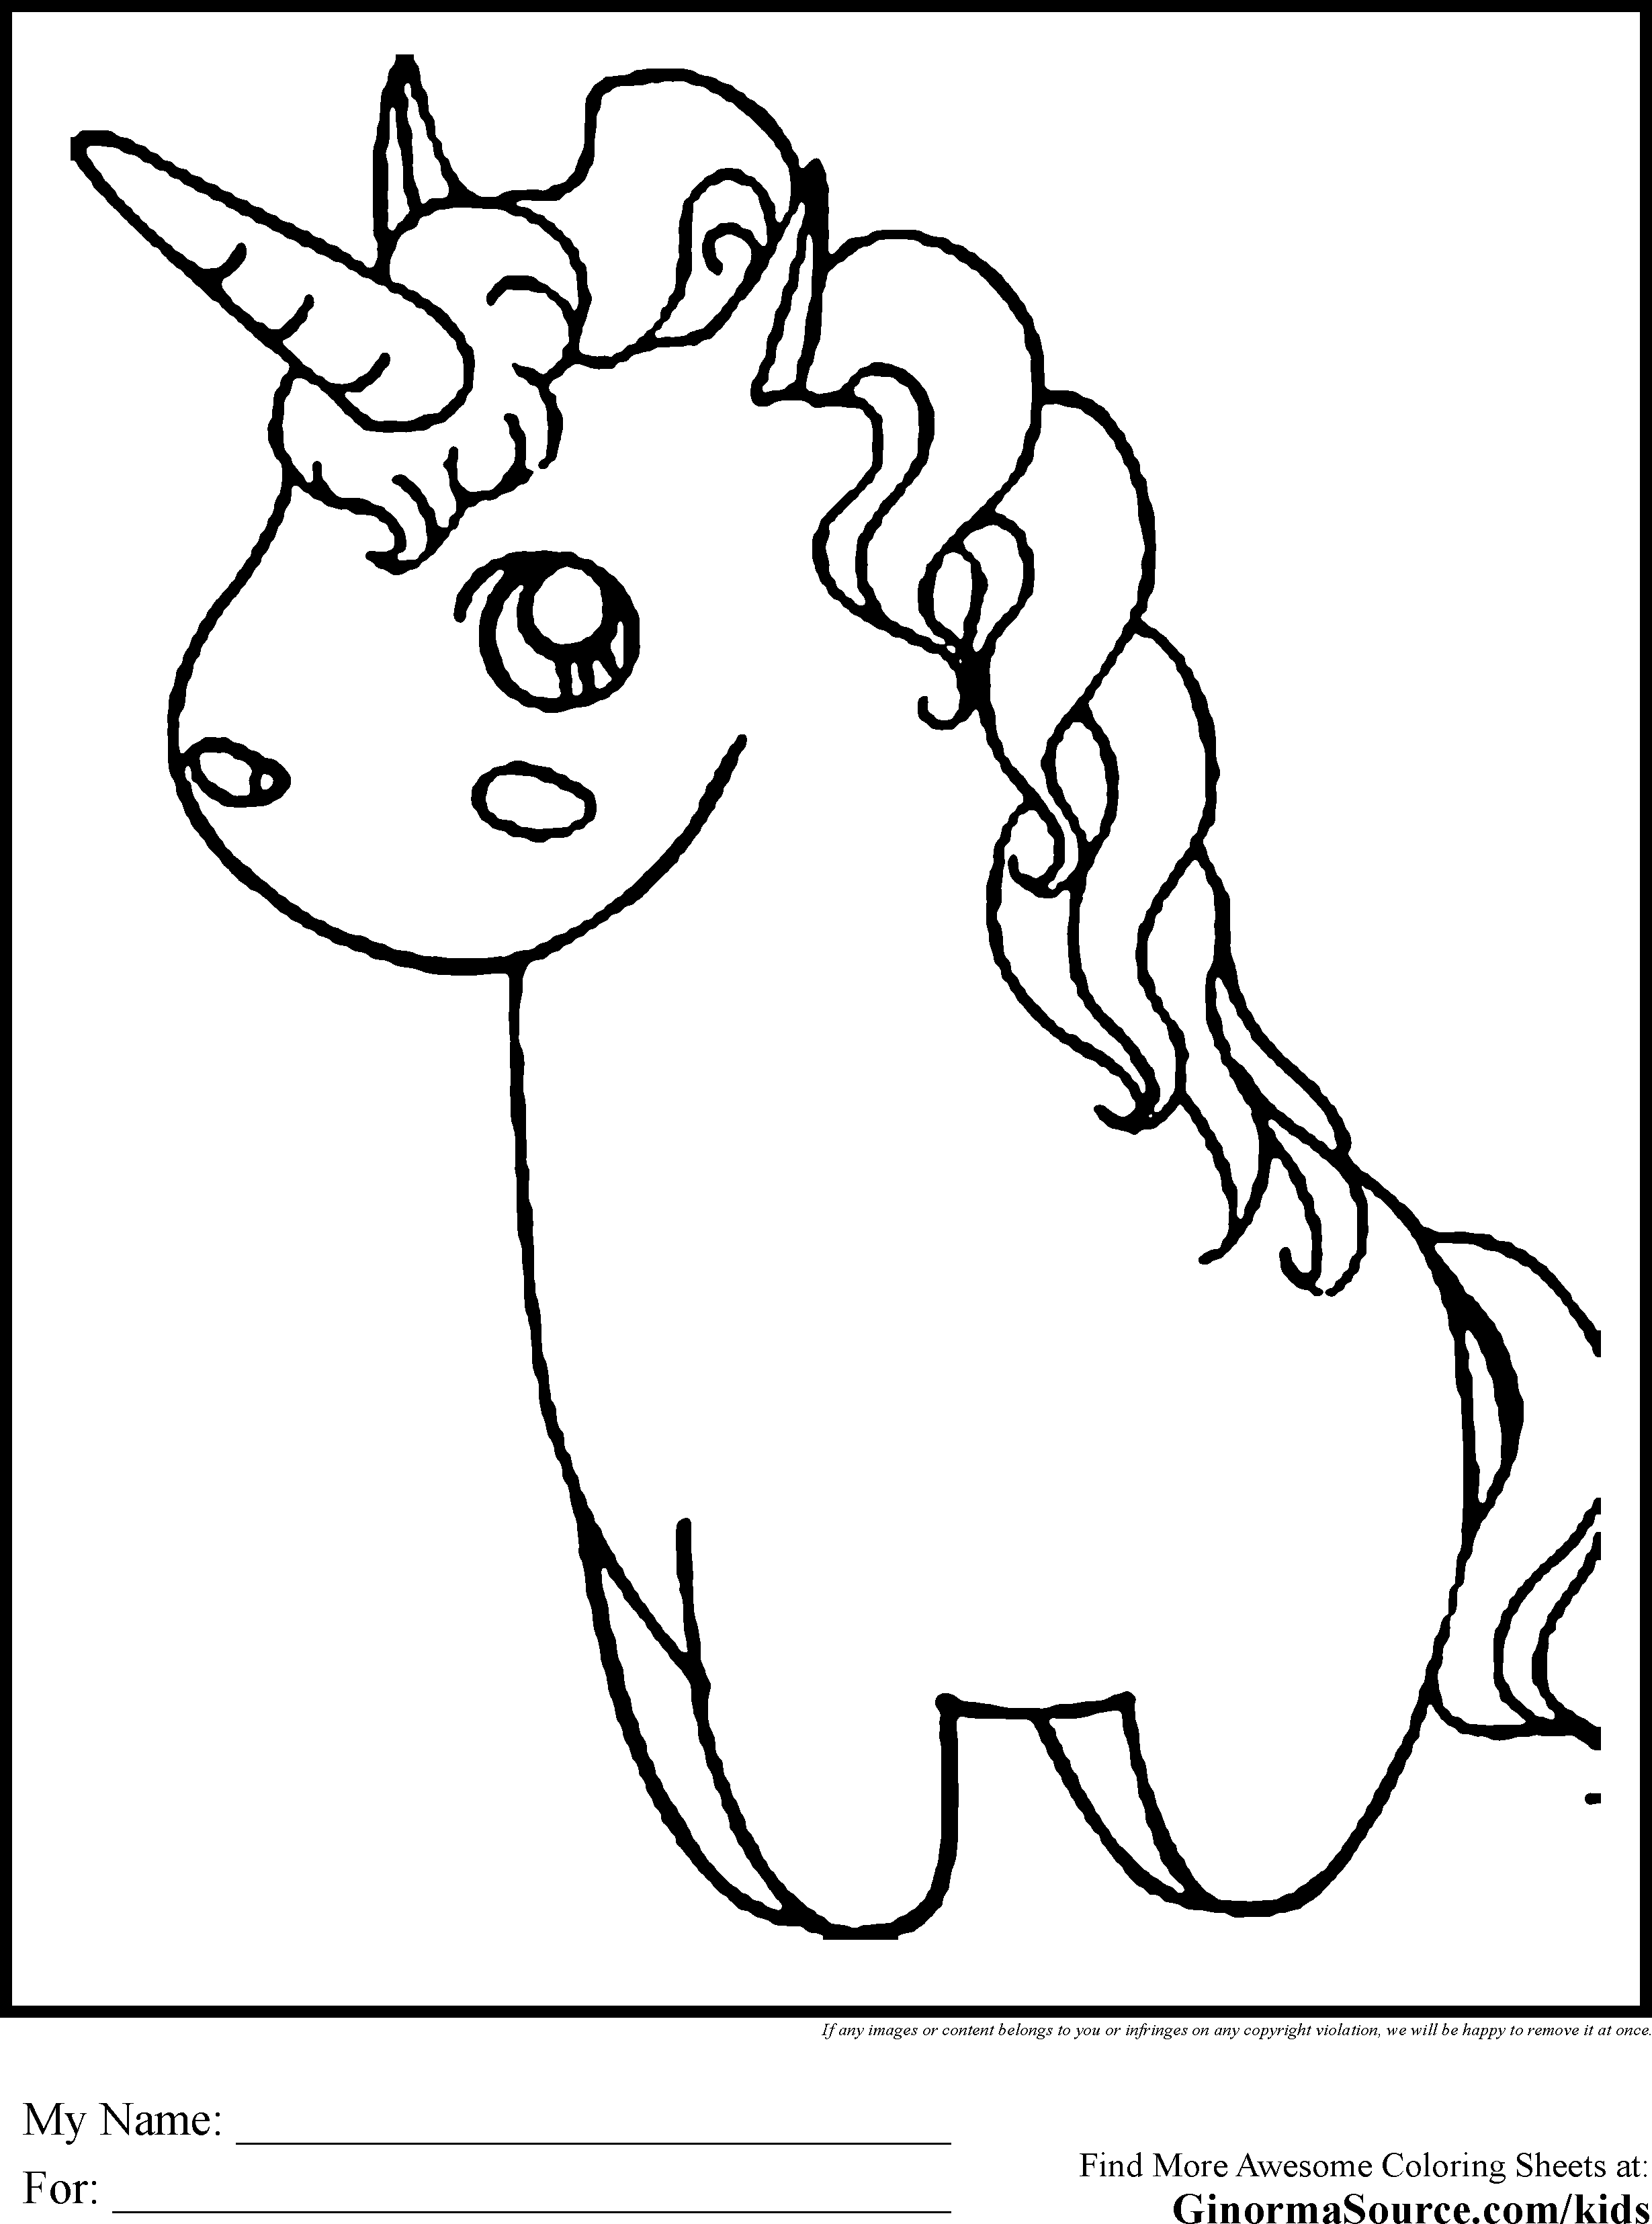 baby narwhal coloring pages two cute narwhals coloring pages free printable coloring pages baby narwhal coloring